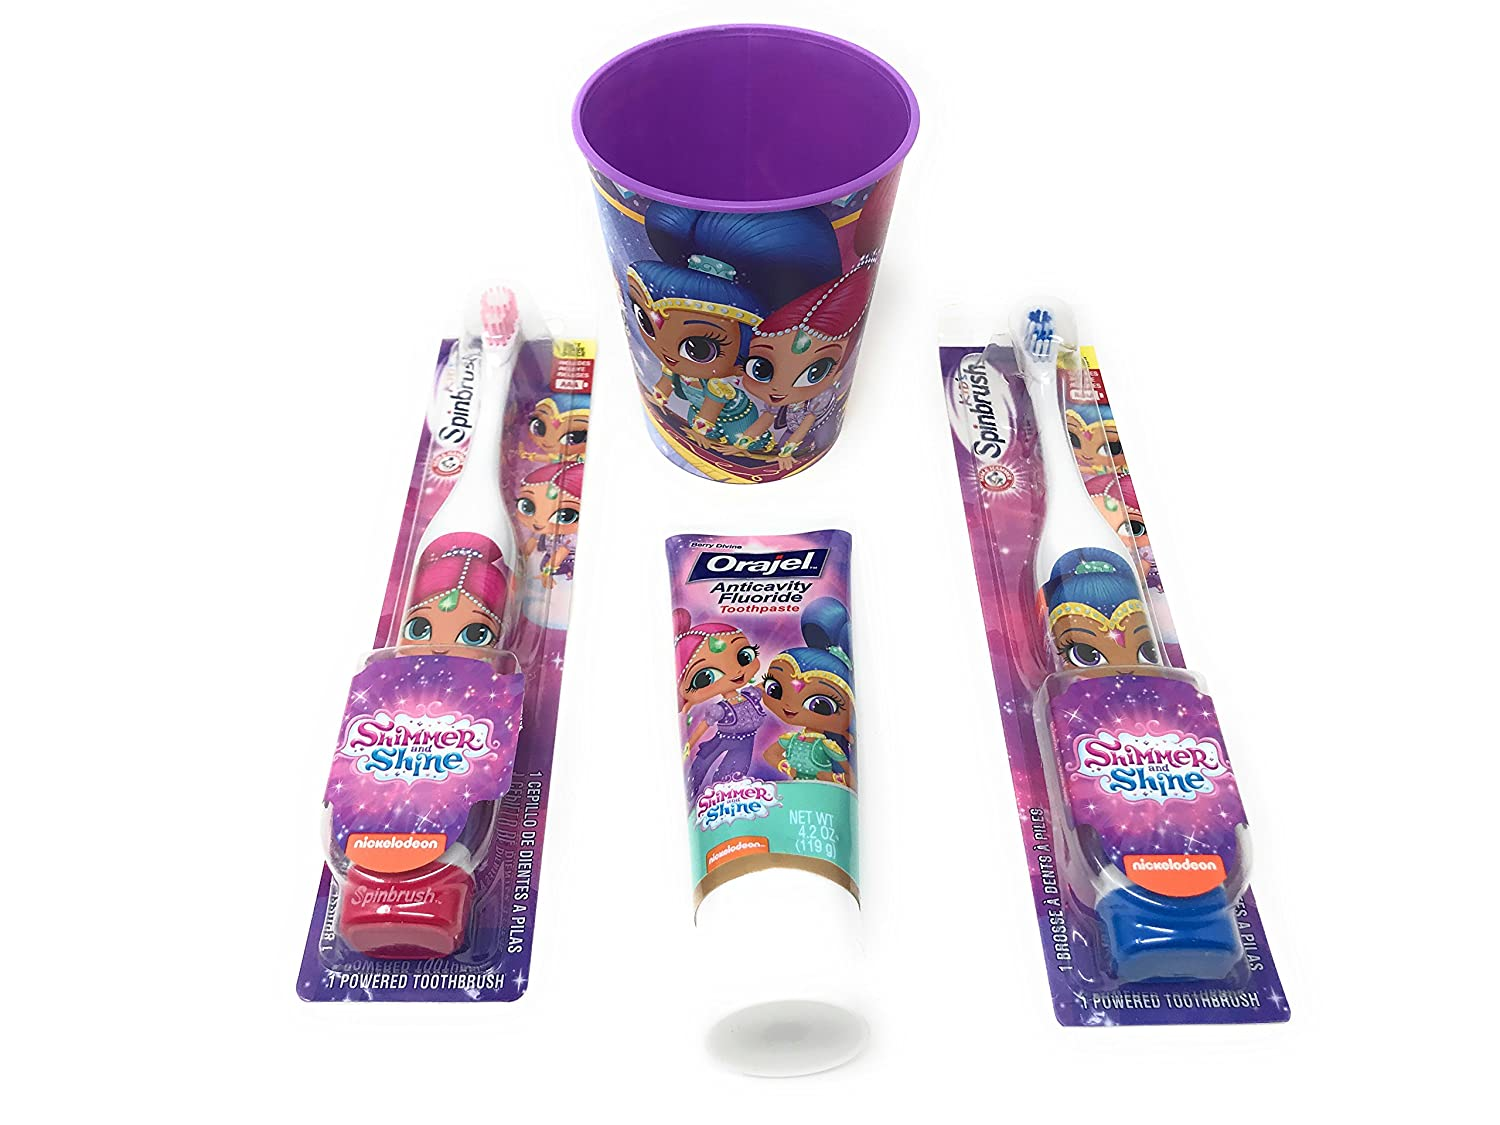 Amazon.com: Shimmer & Shine Spin Brush Set: Beauty